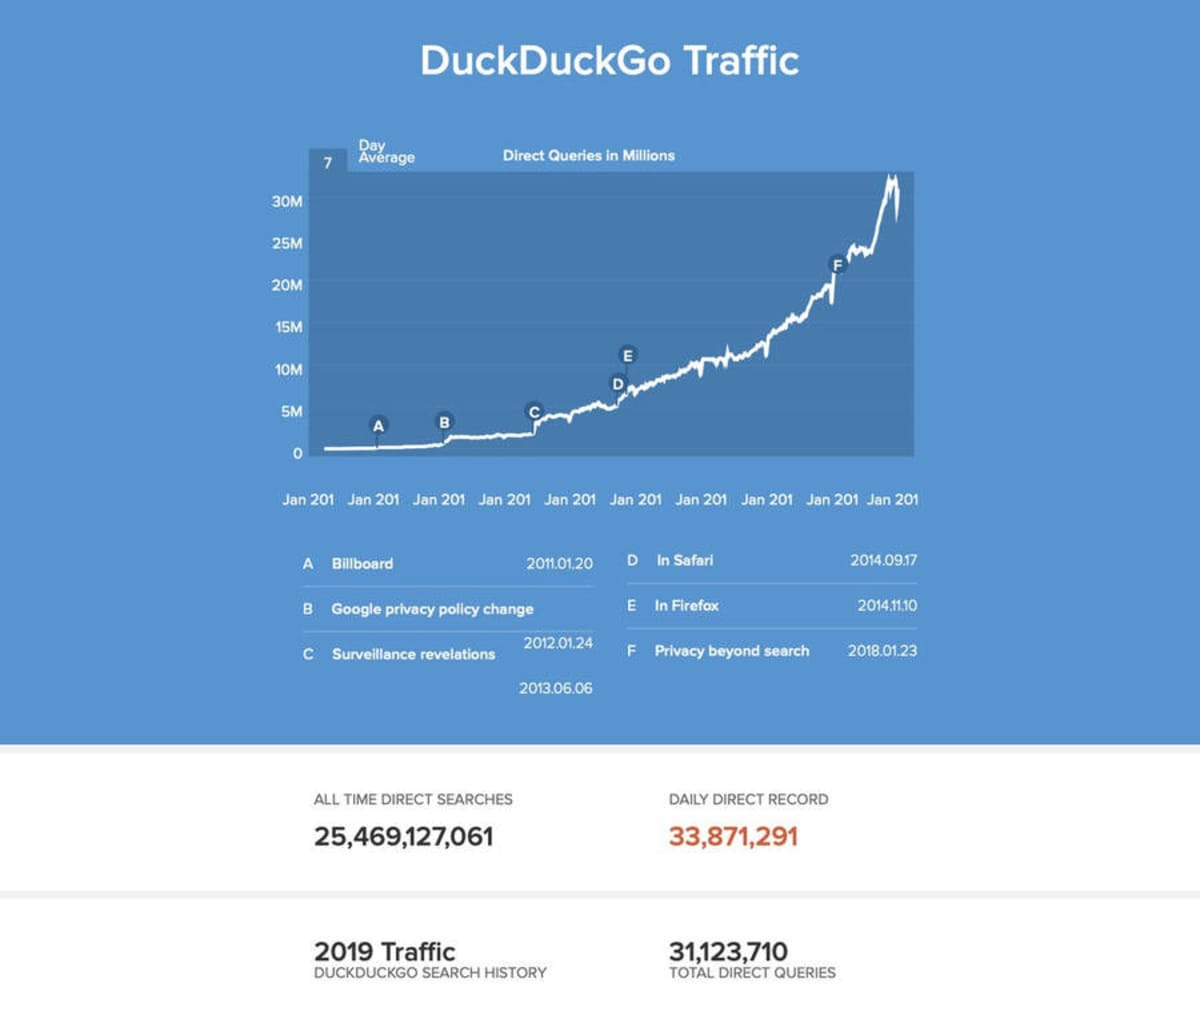 DuckDuckGo served over 9 Billion private searches in 2018.